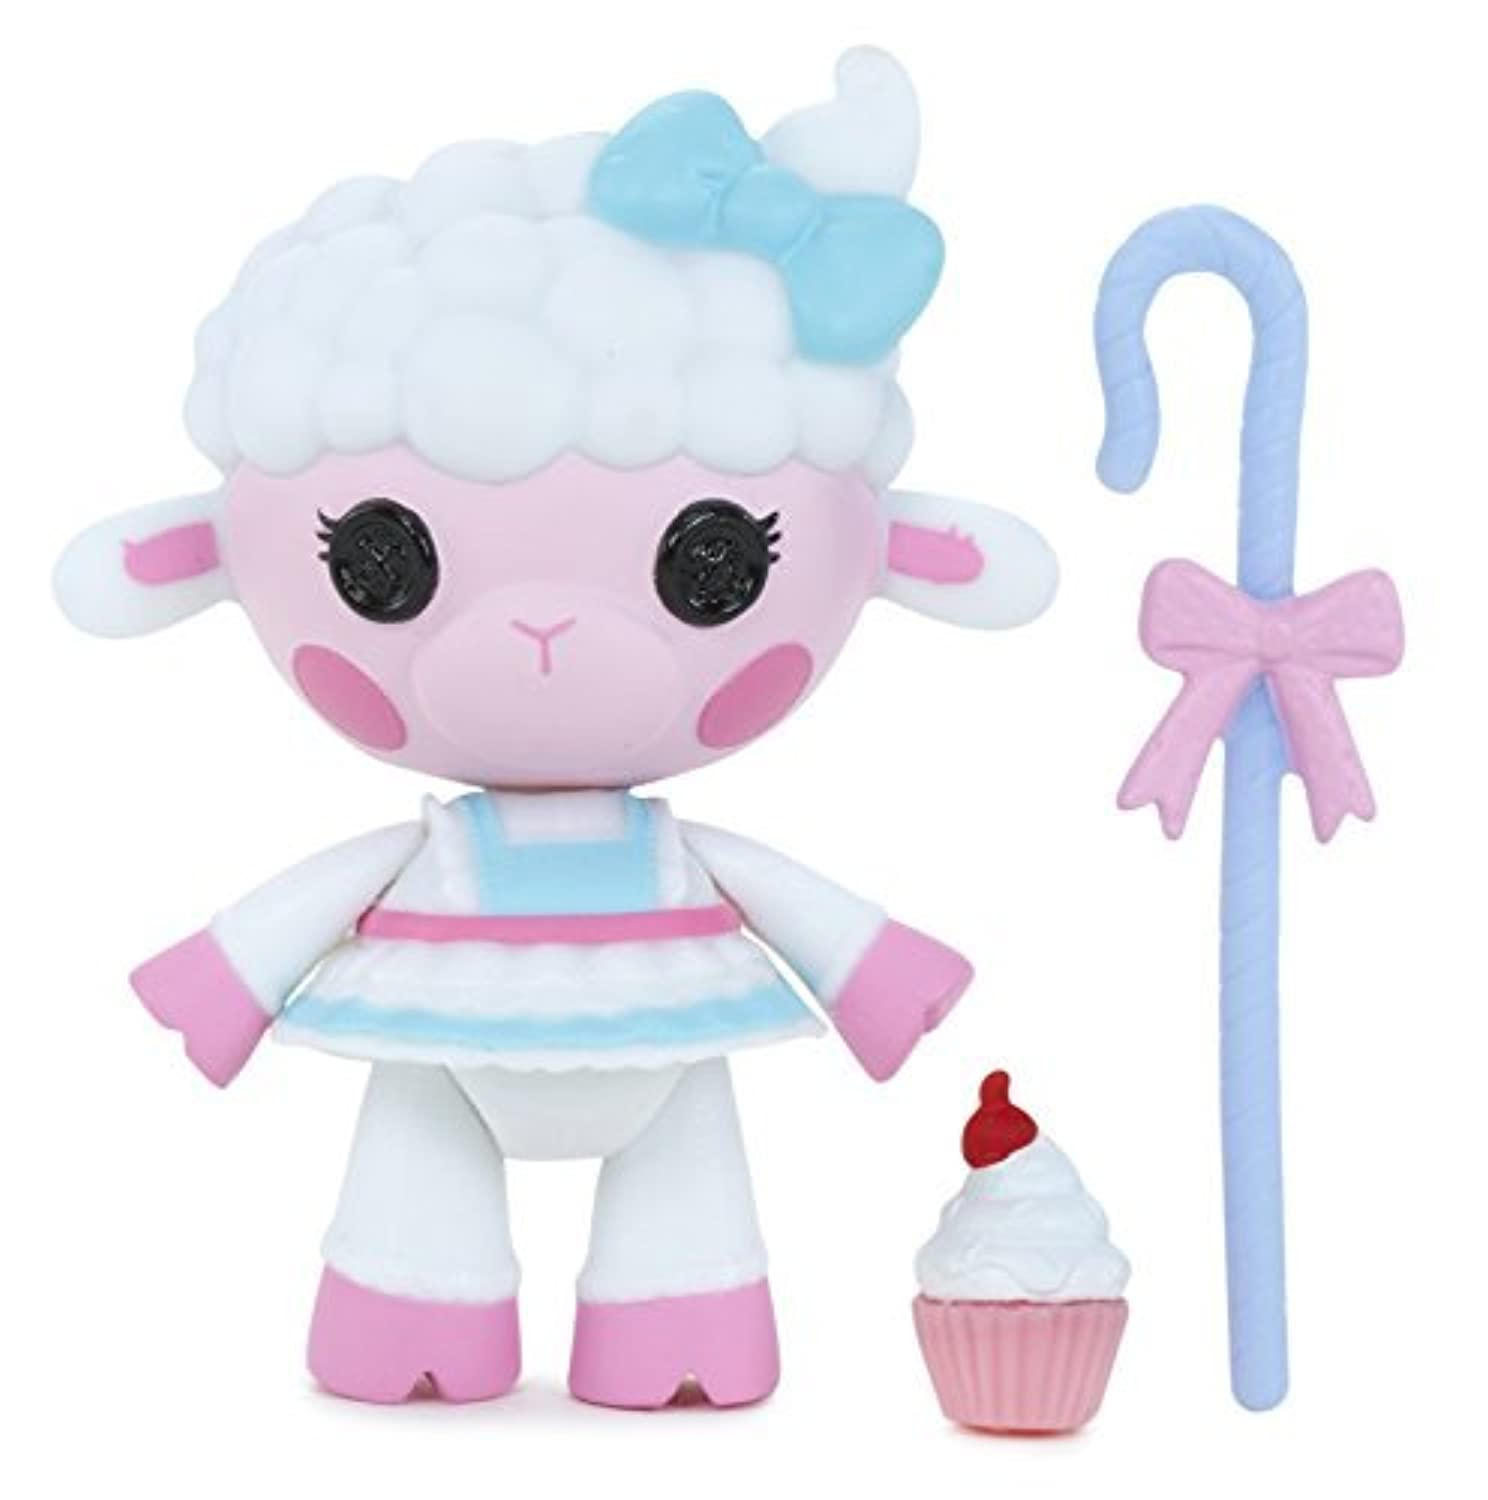 Lalaloopsy Mini Pet Pals Doll- Wooly Fuzzy Fleece by Lalaloopsy [並行輸入品]